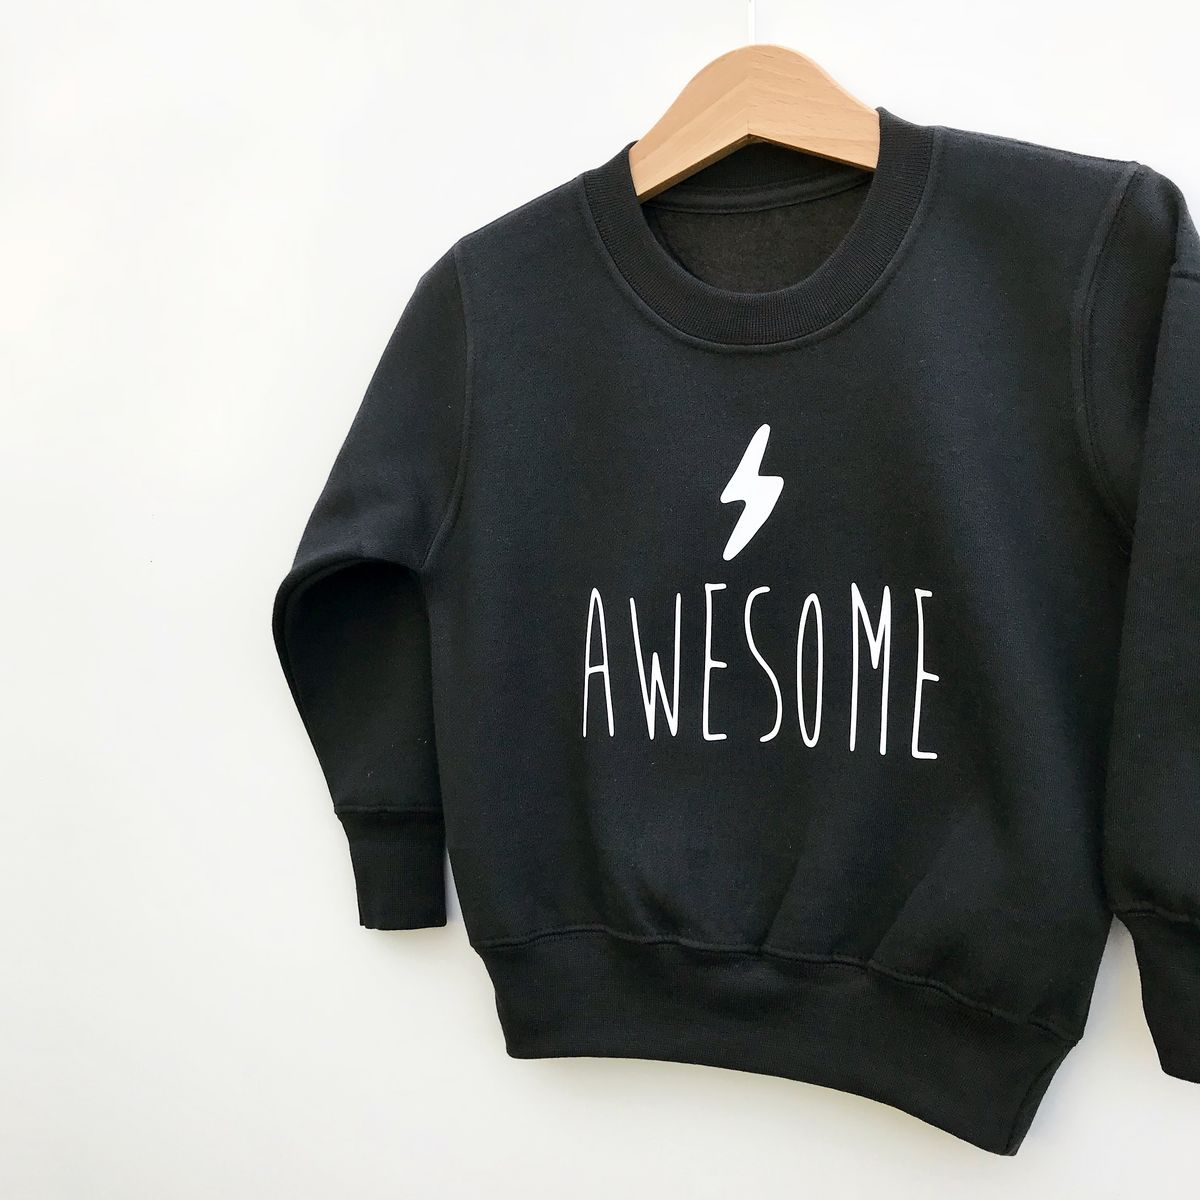 'Awesome' Kids Sweatshirt with Lightning Bolt (various sizes) - product images  of